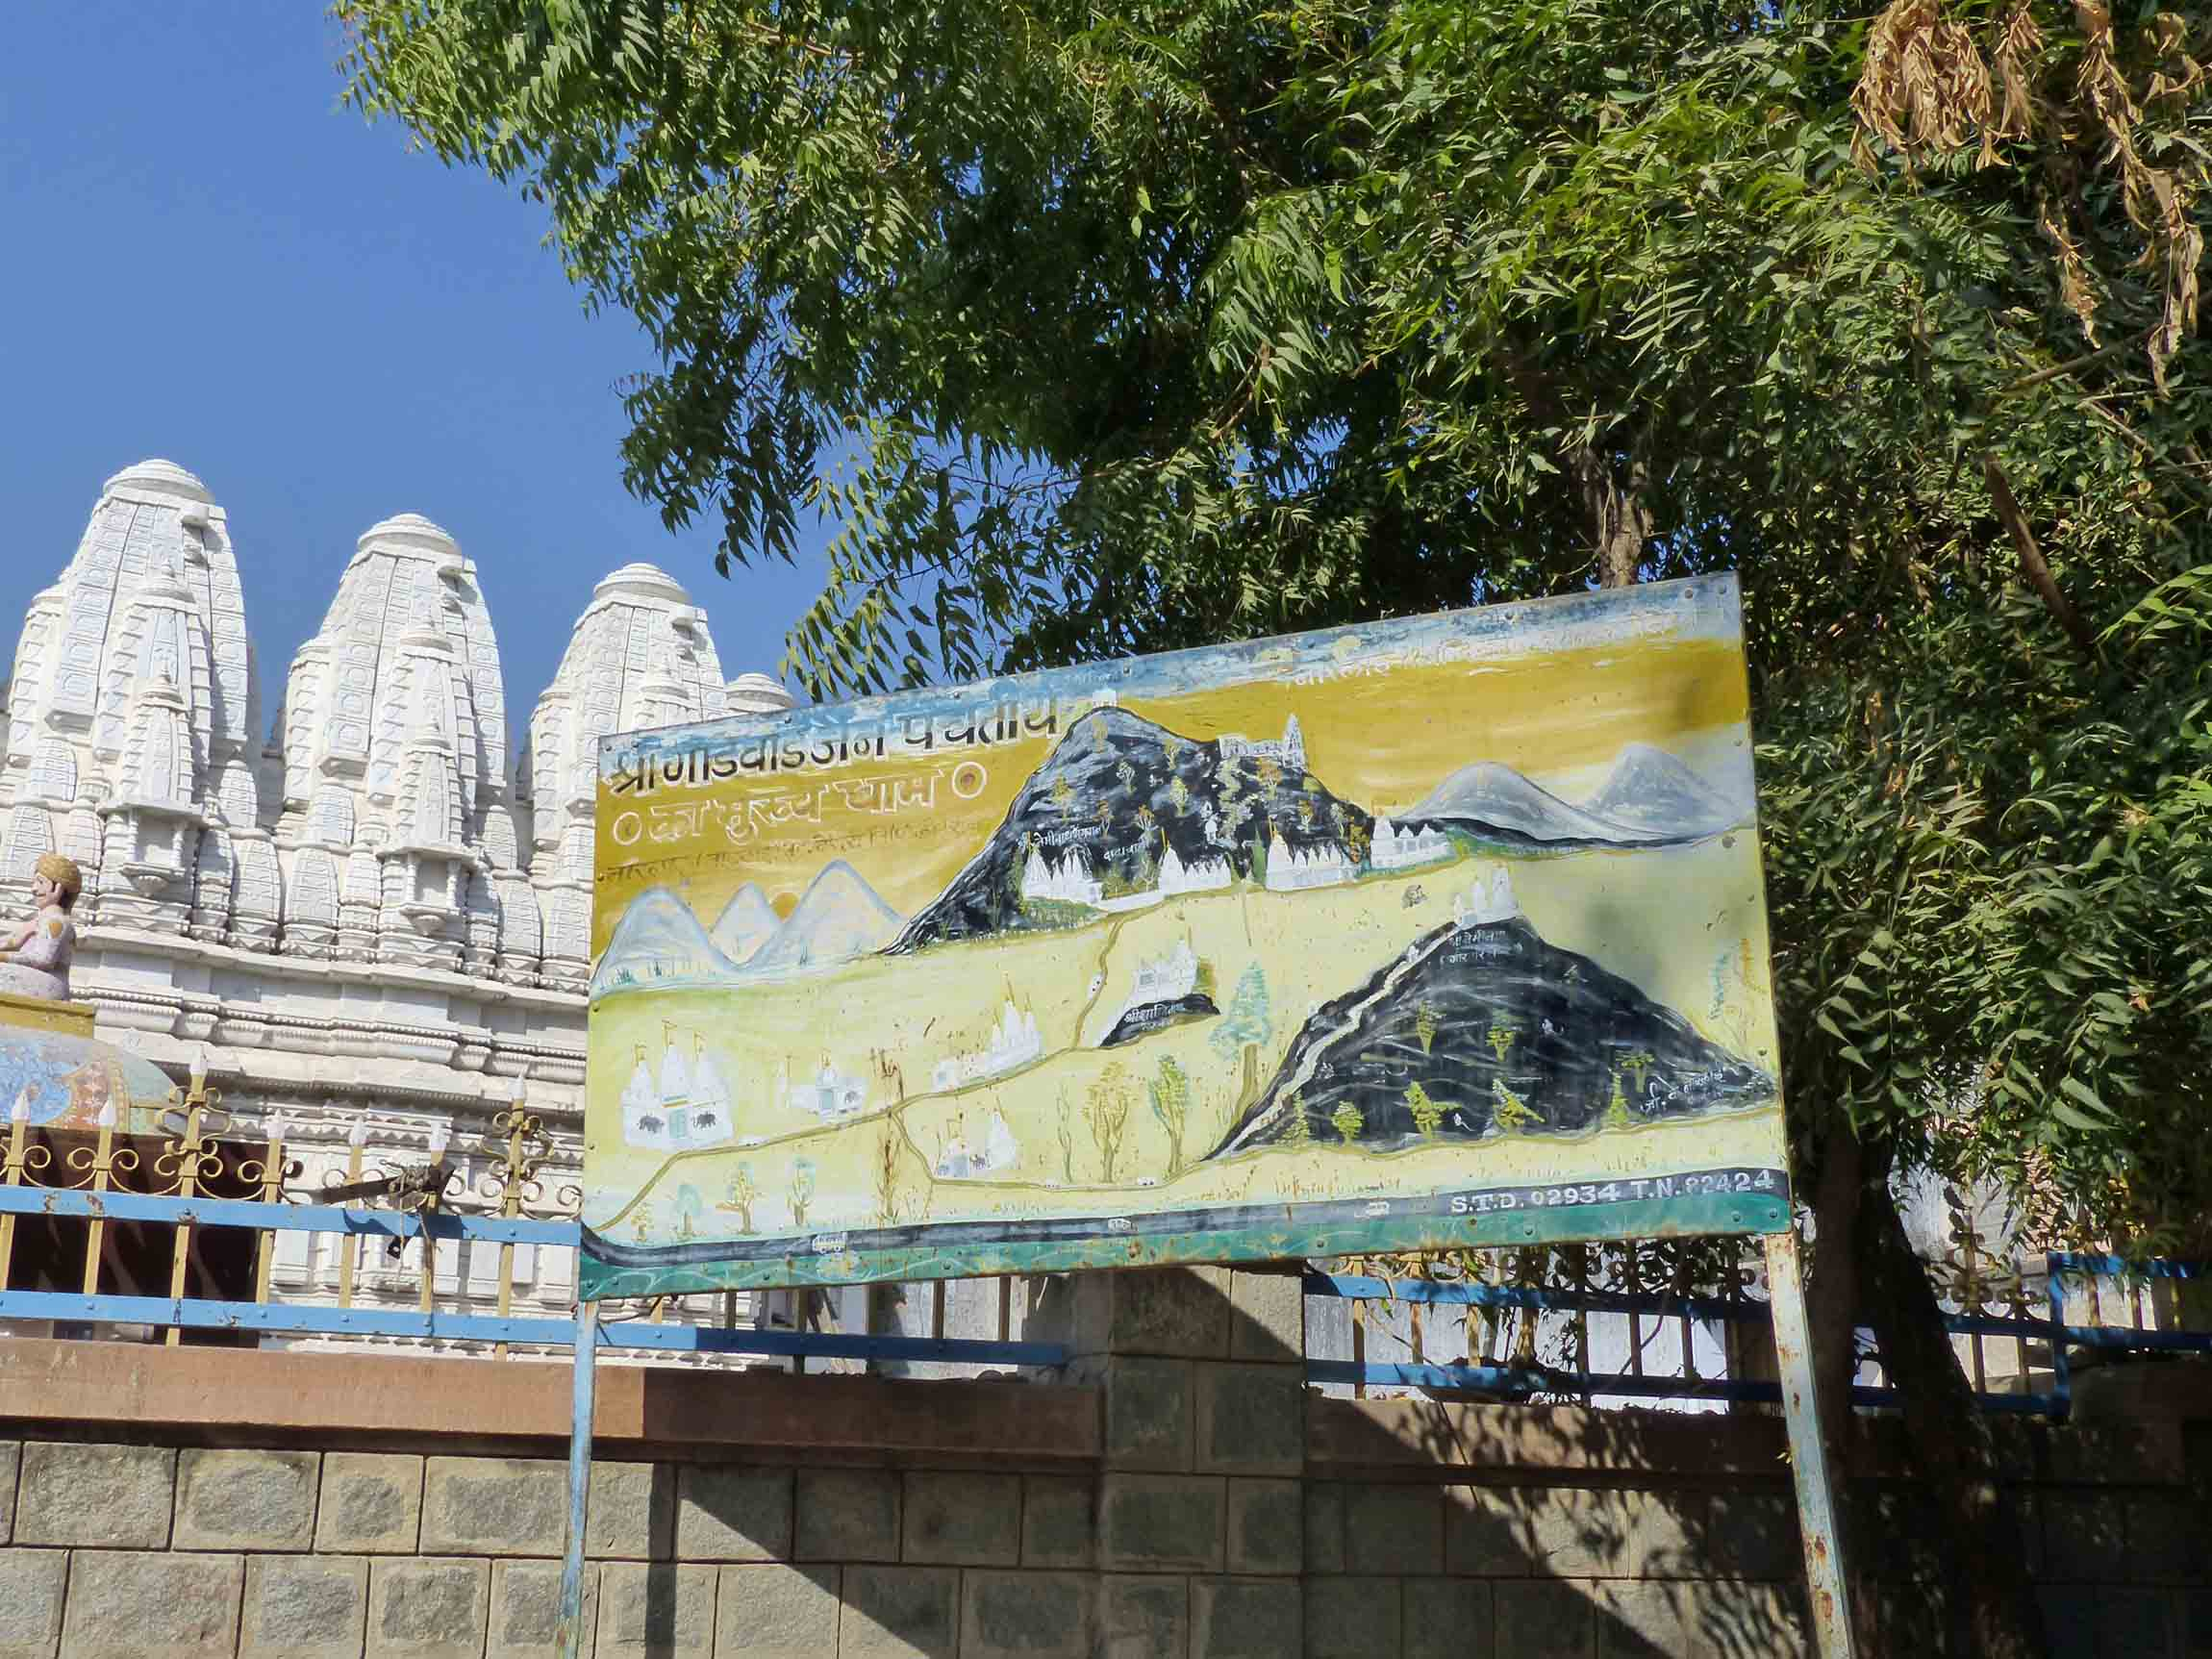 Large notice board in front of temple